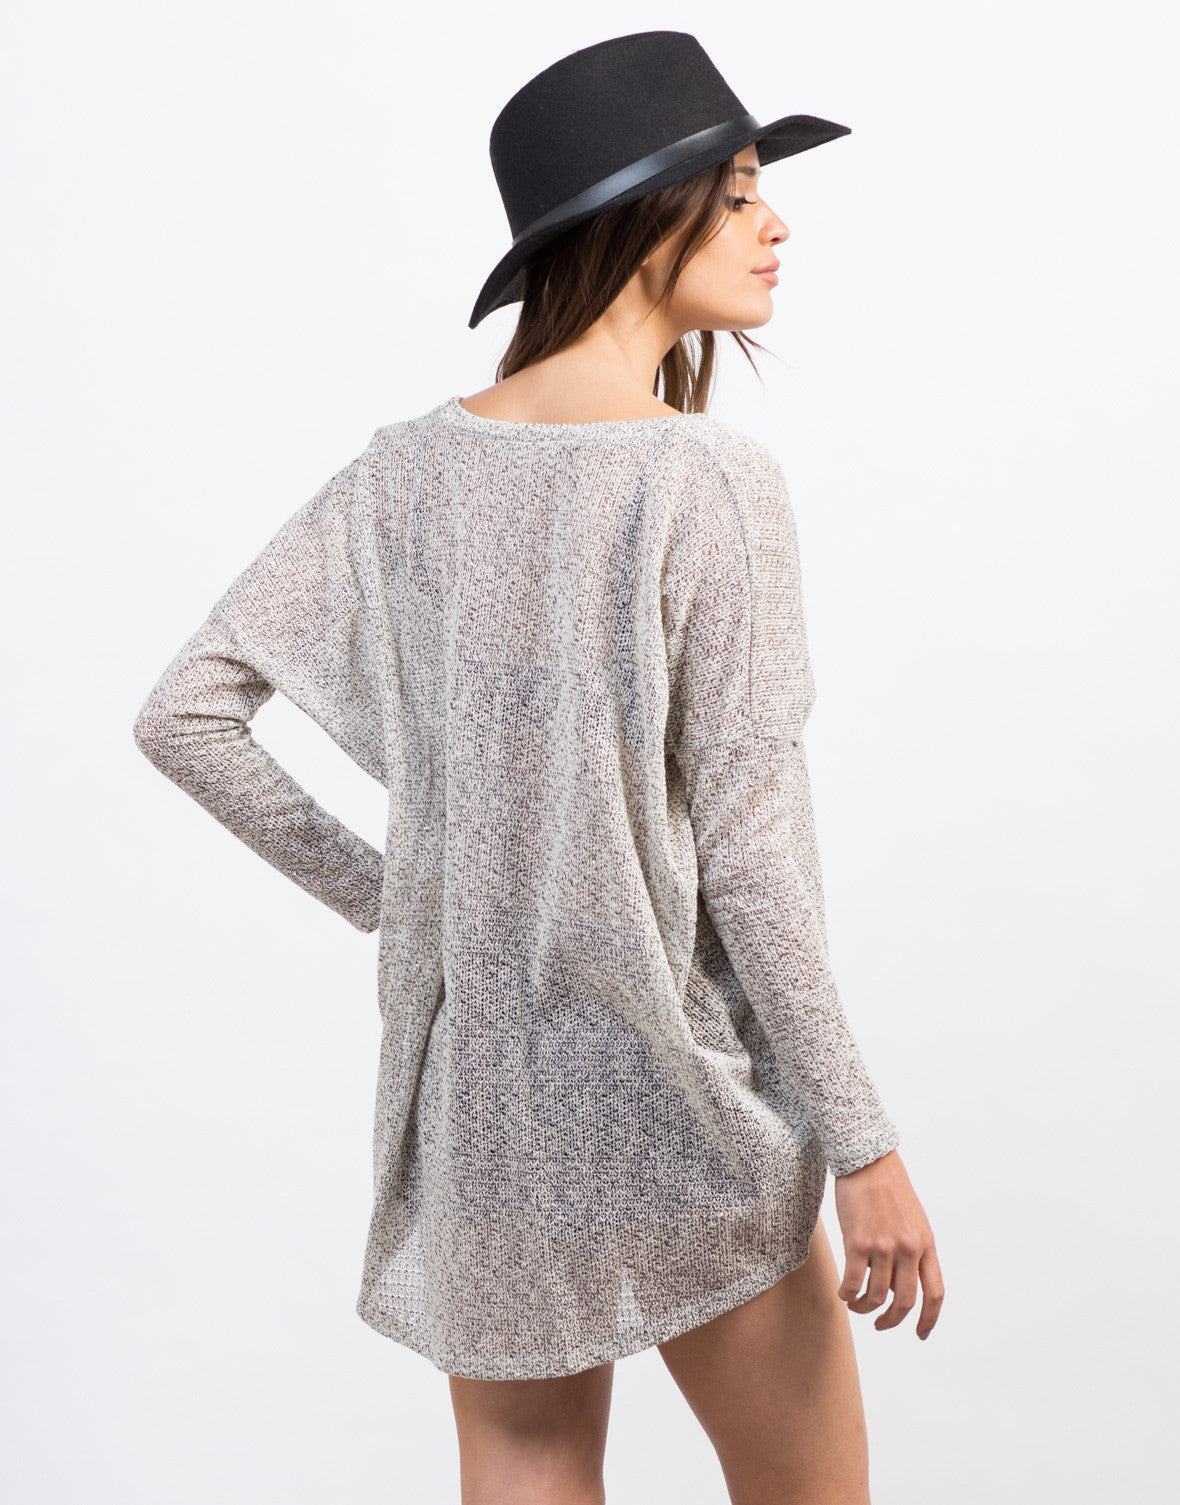 Back View of Mixed Knit Pocket Top